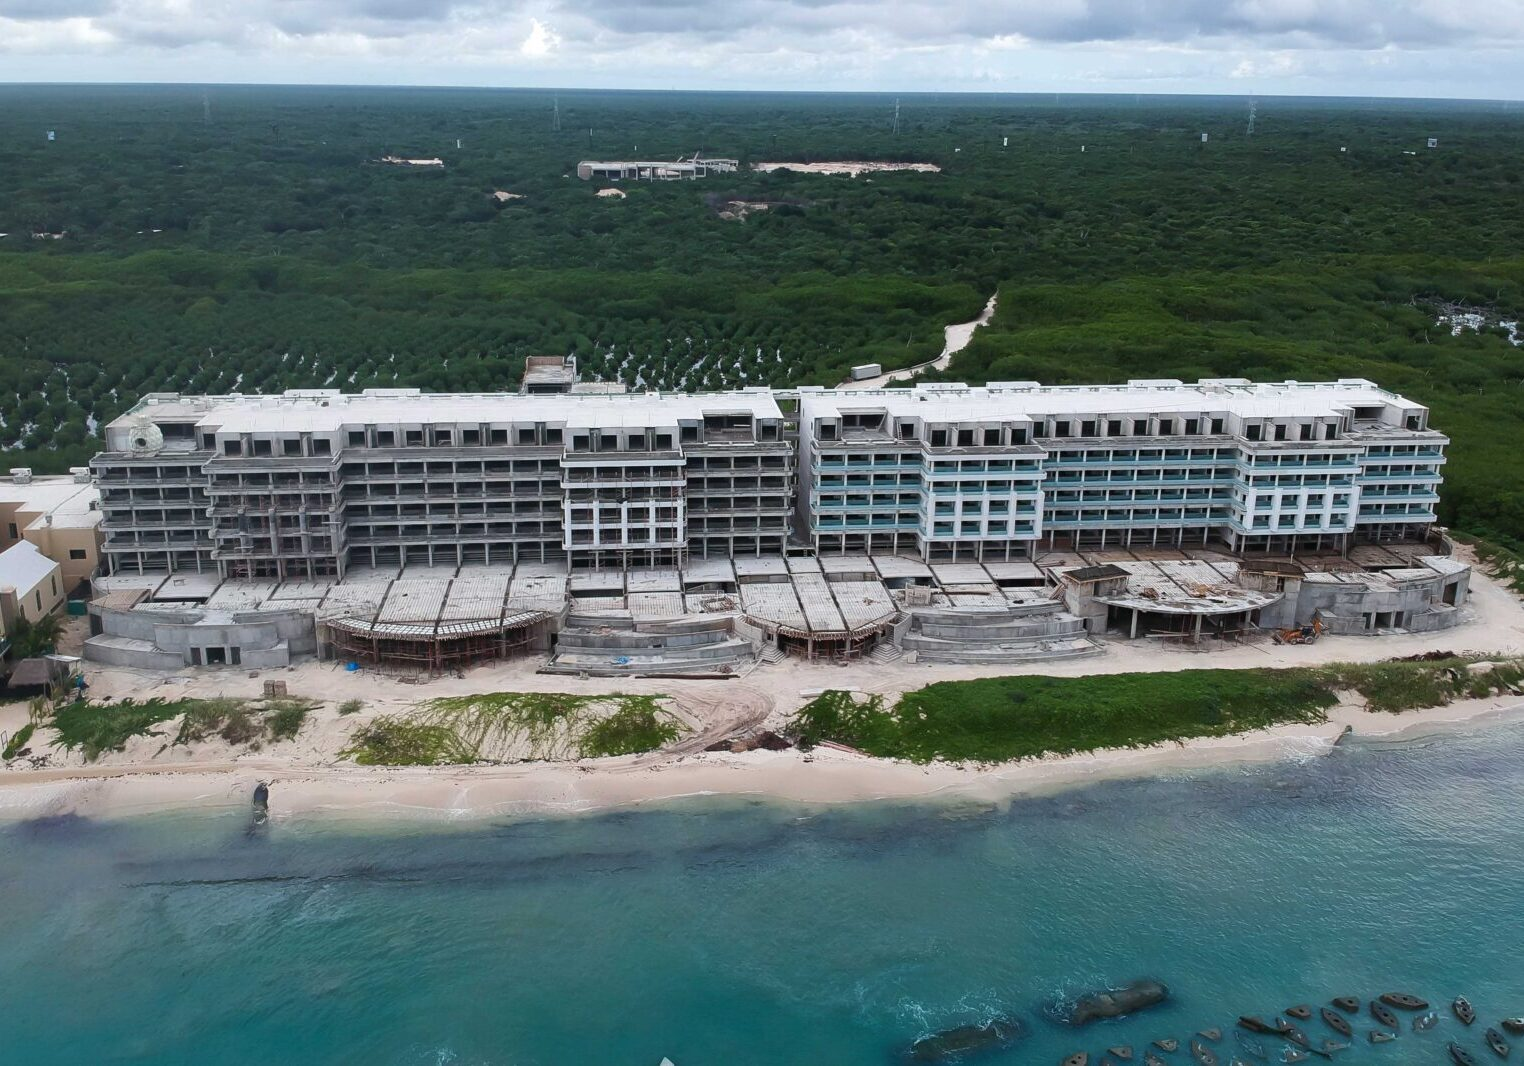 Nickelodeon_Riviera_Maya_All_Inclusive_Resort_Luxury_Travel_Mexico_Cancun_Be_All_Inclusive_Construction_Travel_Agency_0013